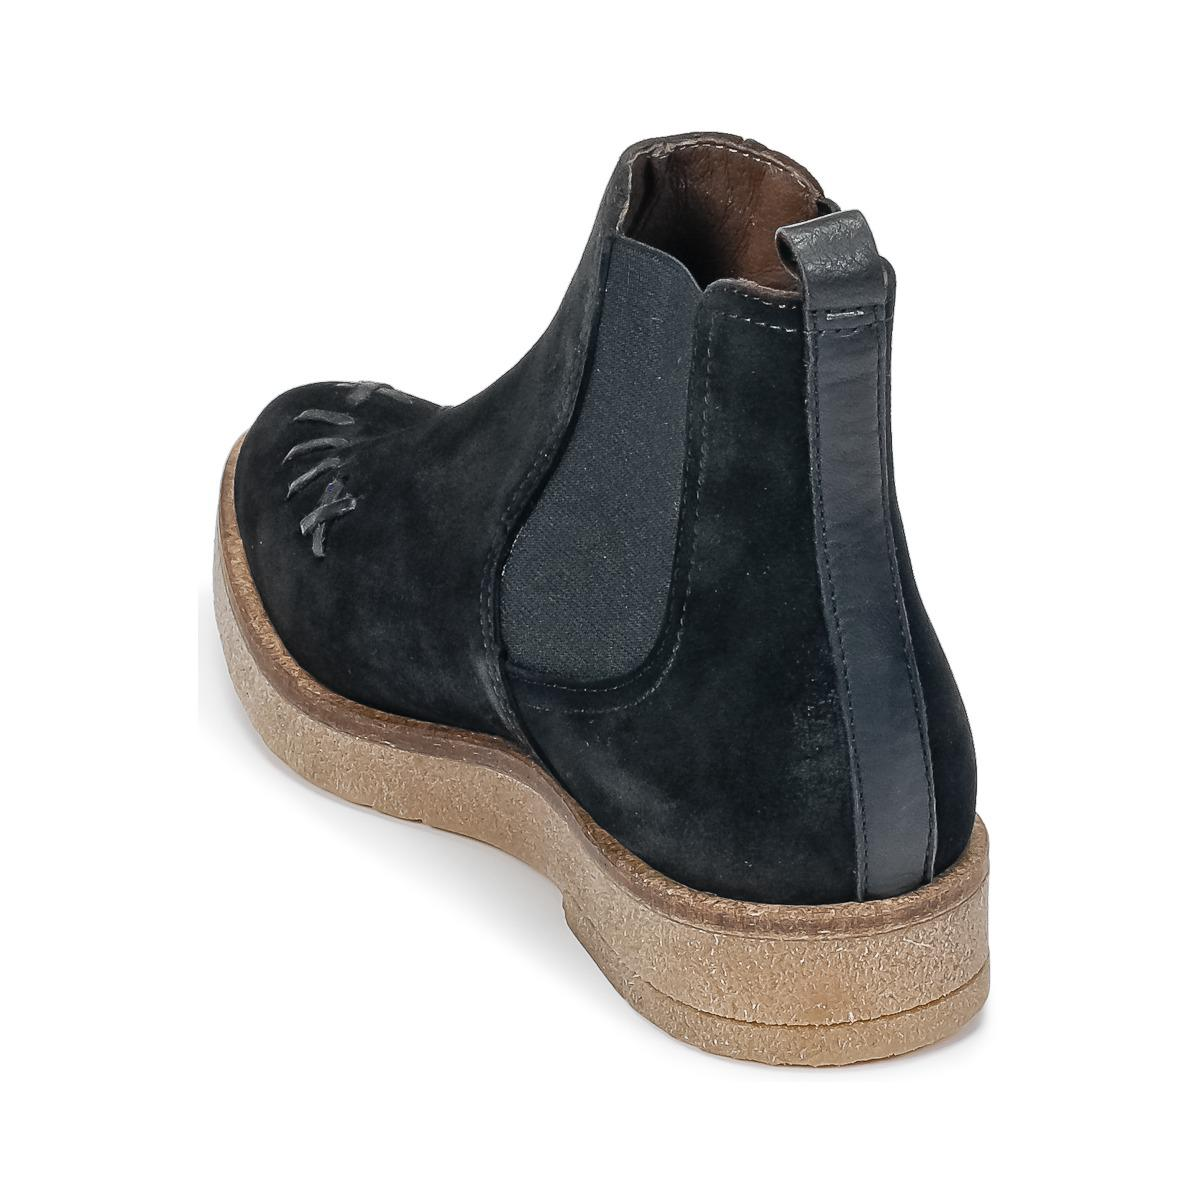 IKKS Saddled Creepers Women's Mid Boots In Black